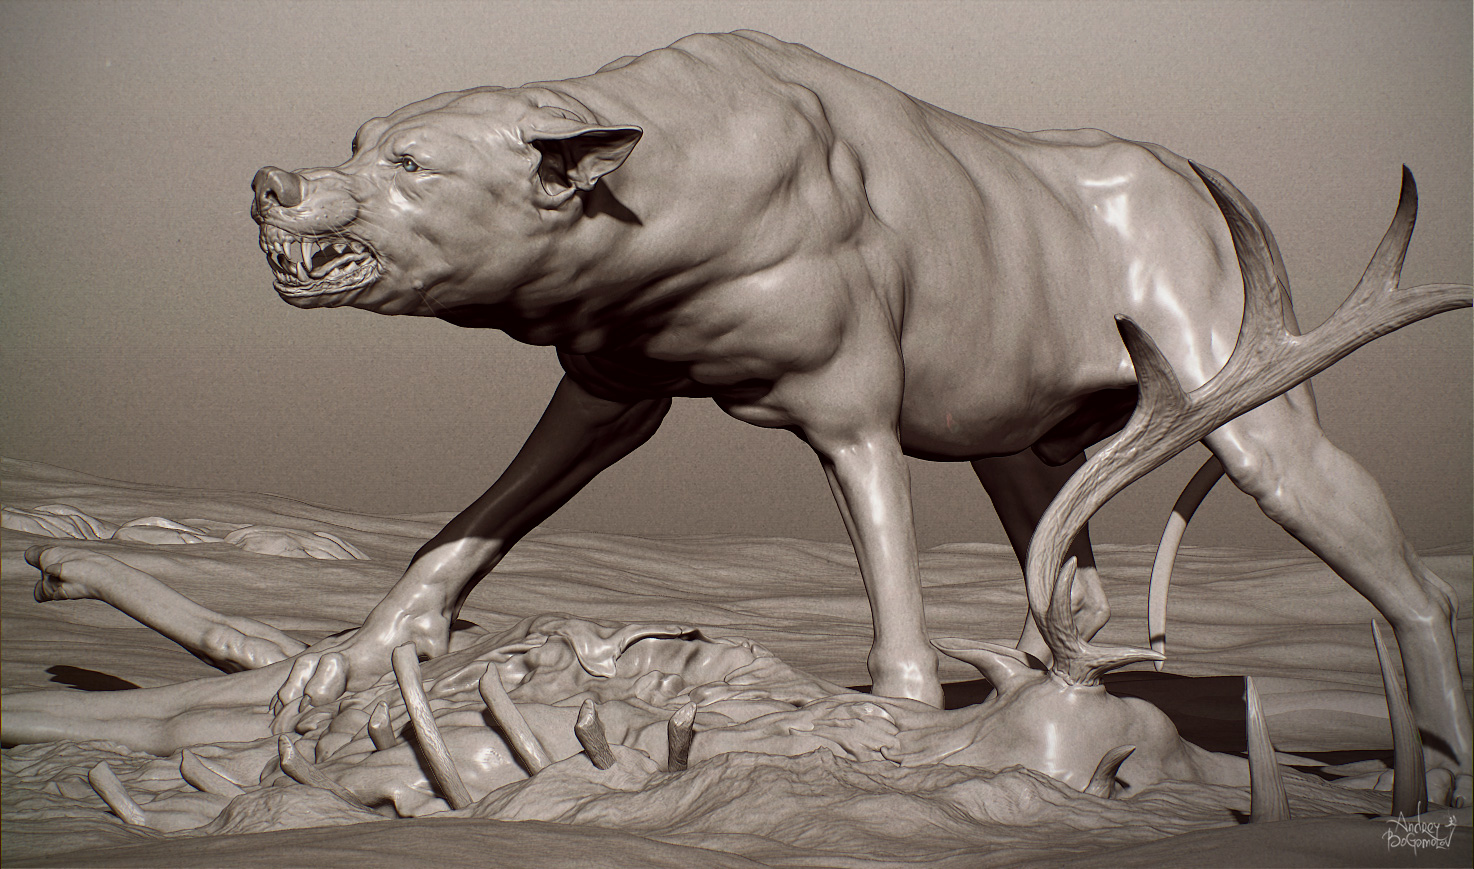 Andrey bogomolov page 4 for Mirror zbrush